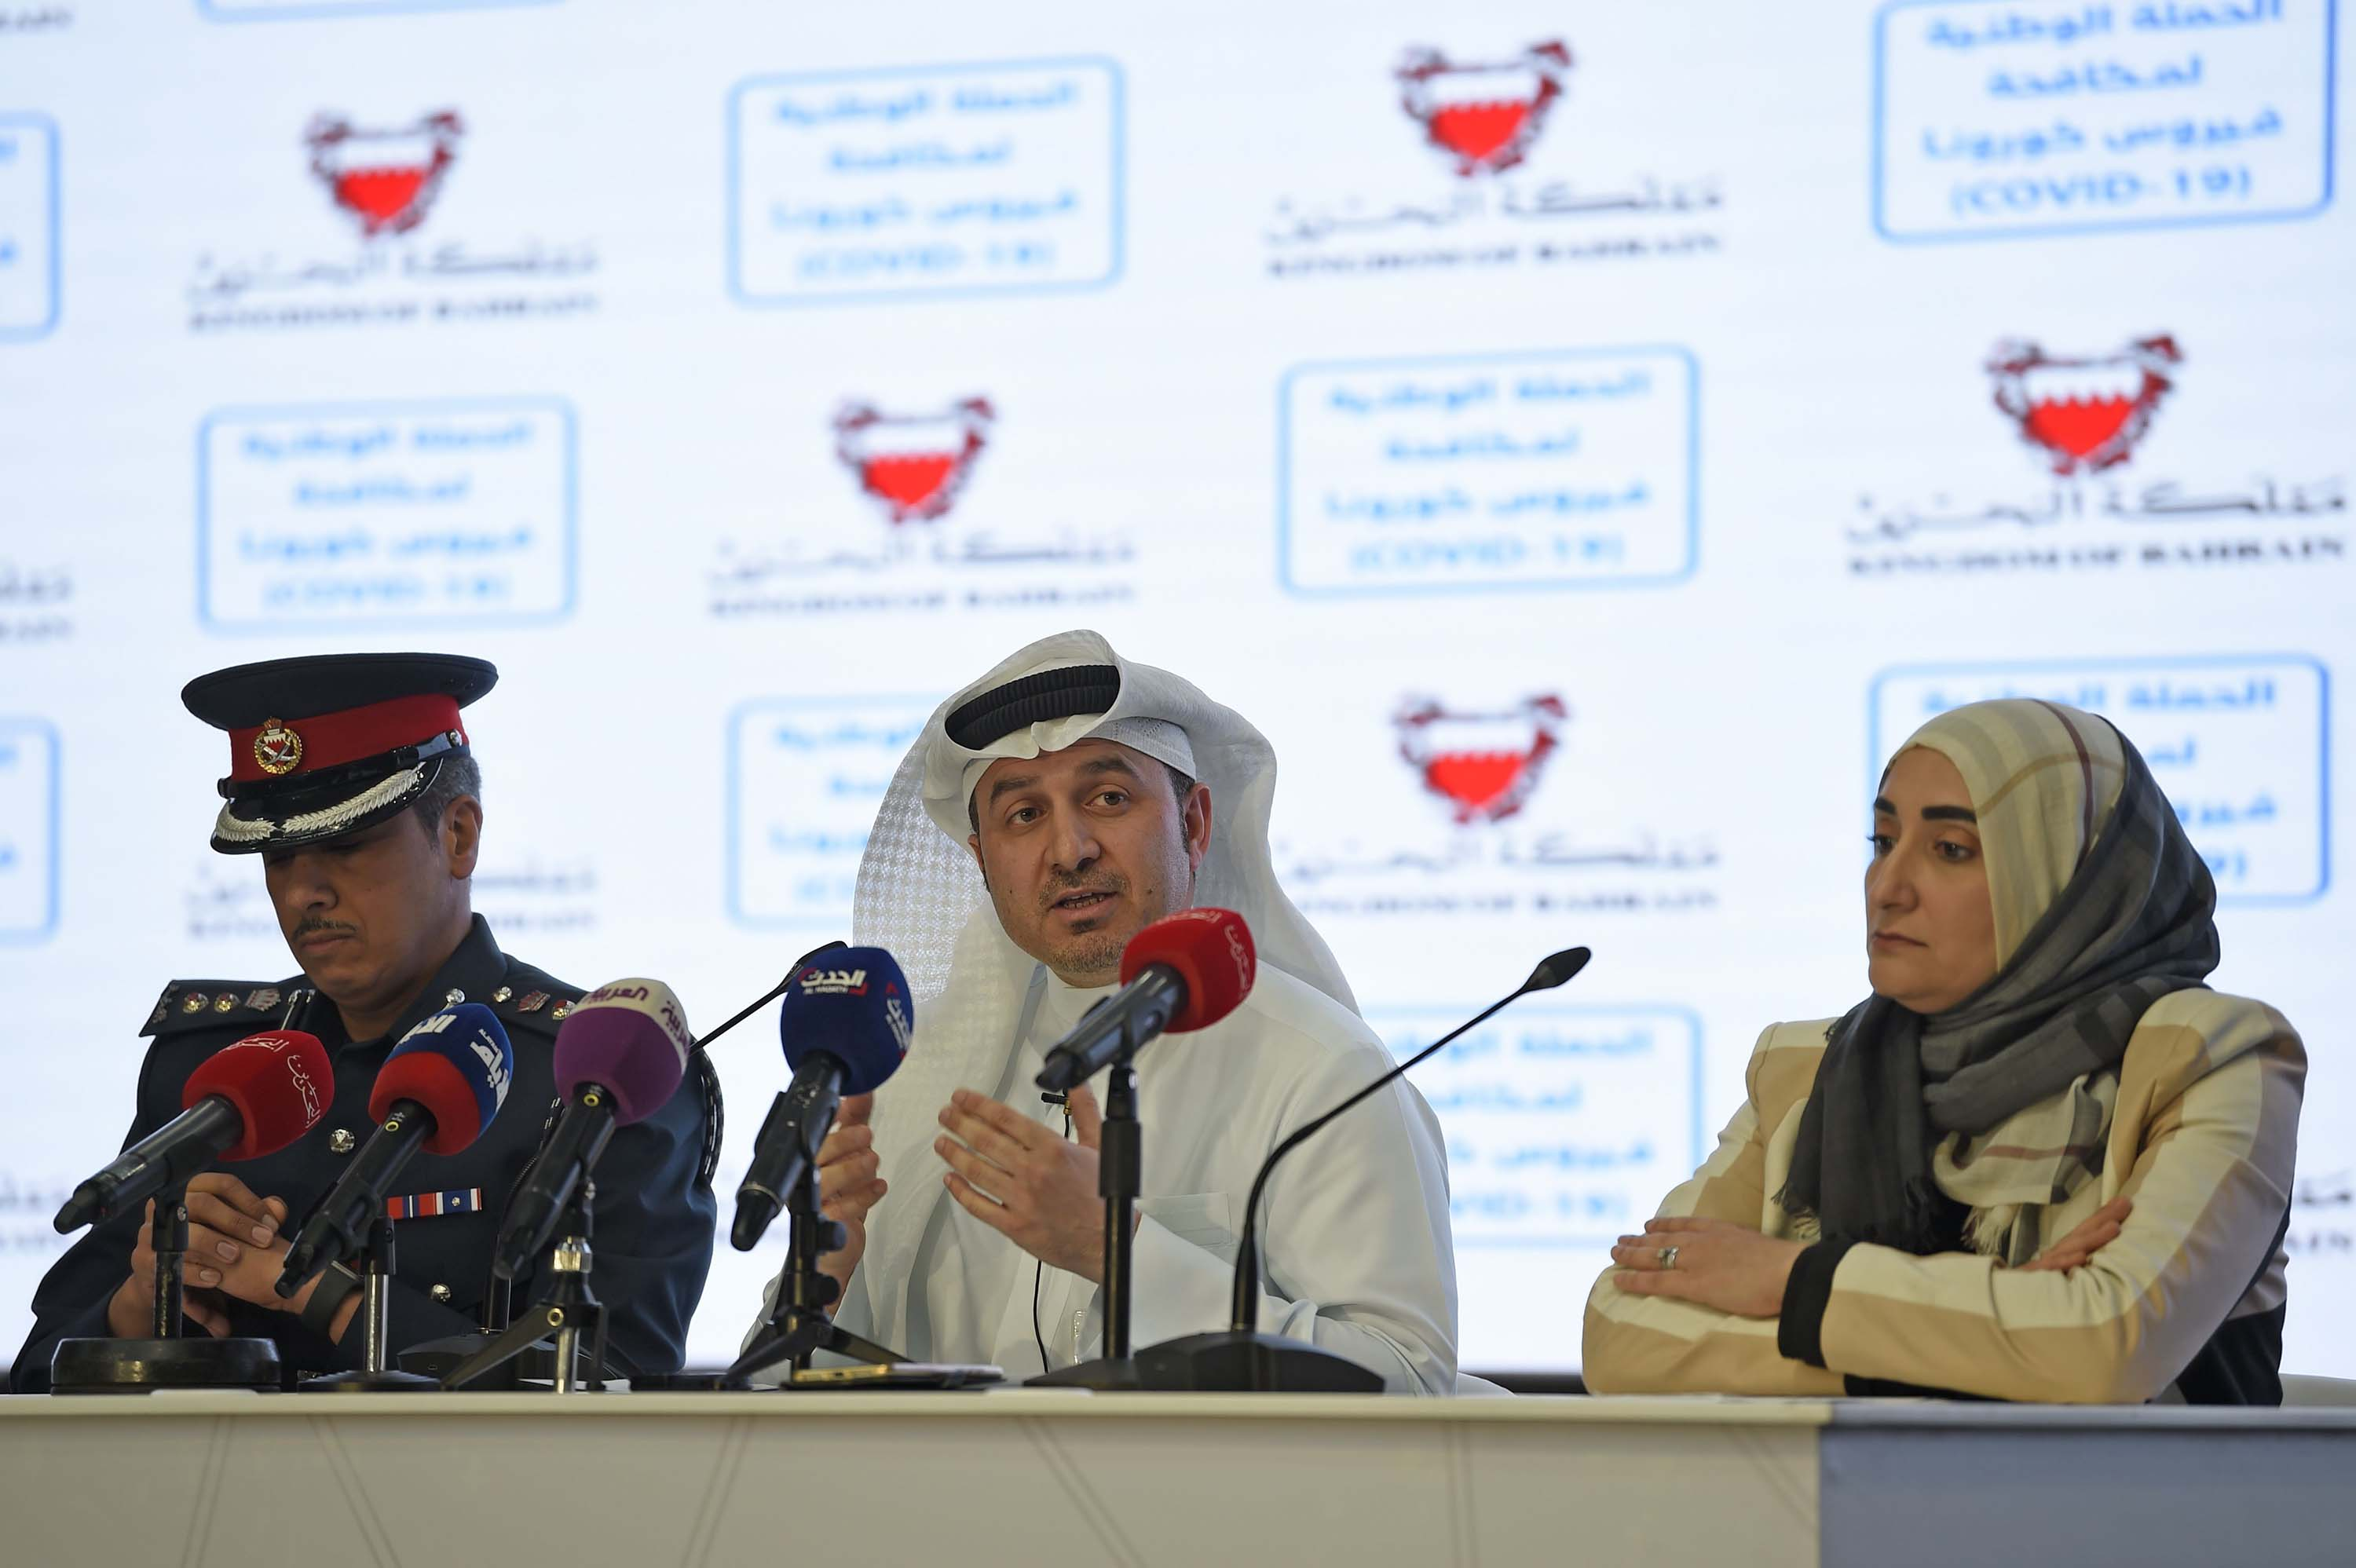 From left: Lieutenant Colonel Mohammed al-Benghdair, chief executive of the National Disaster Commission, and COVID-19 Task Force members Manaf al-Qahtani, alongside Jameela al-Salman, hold a press conference in the Bahraini city of Riffa on February 28.